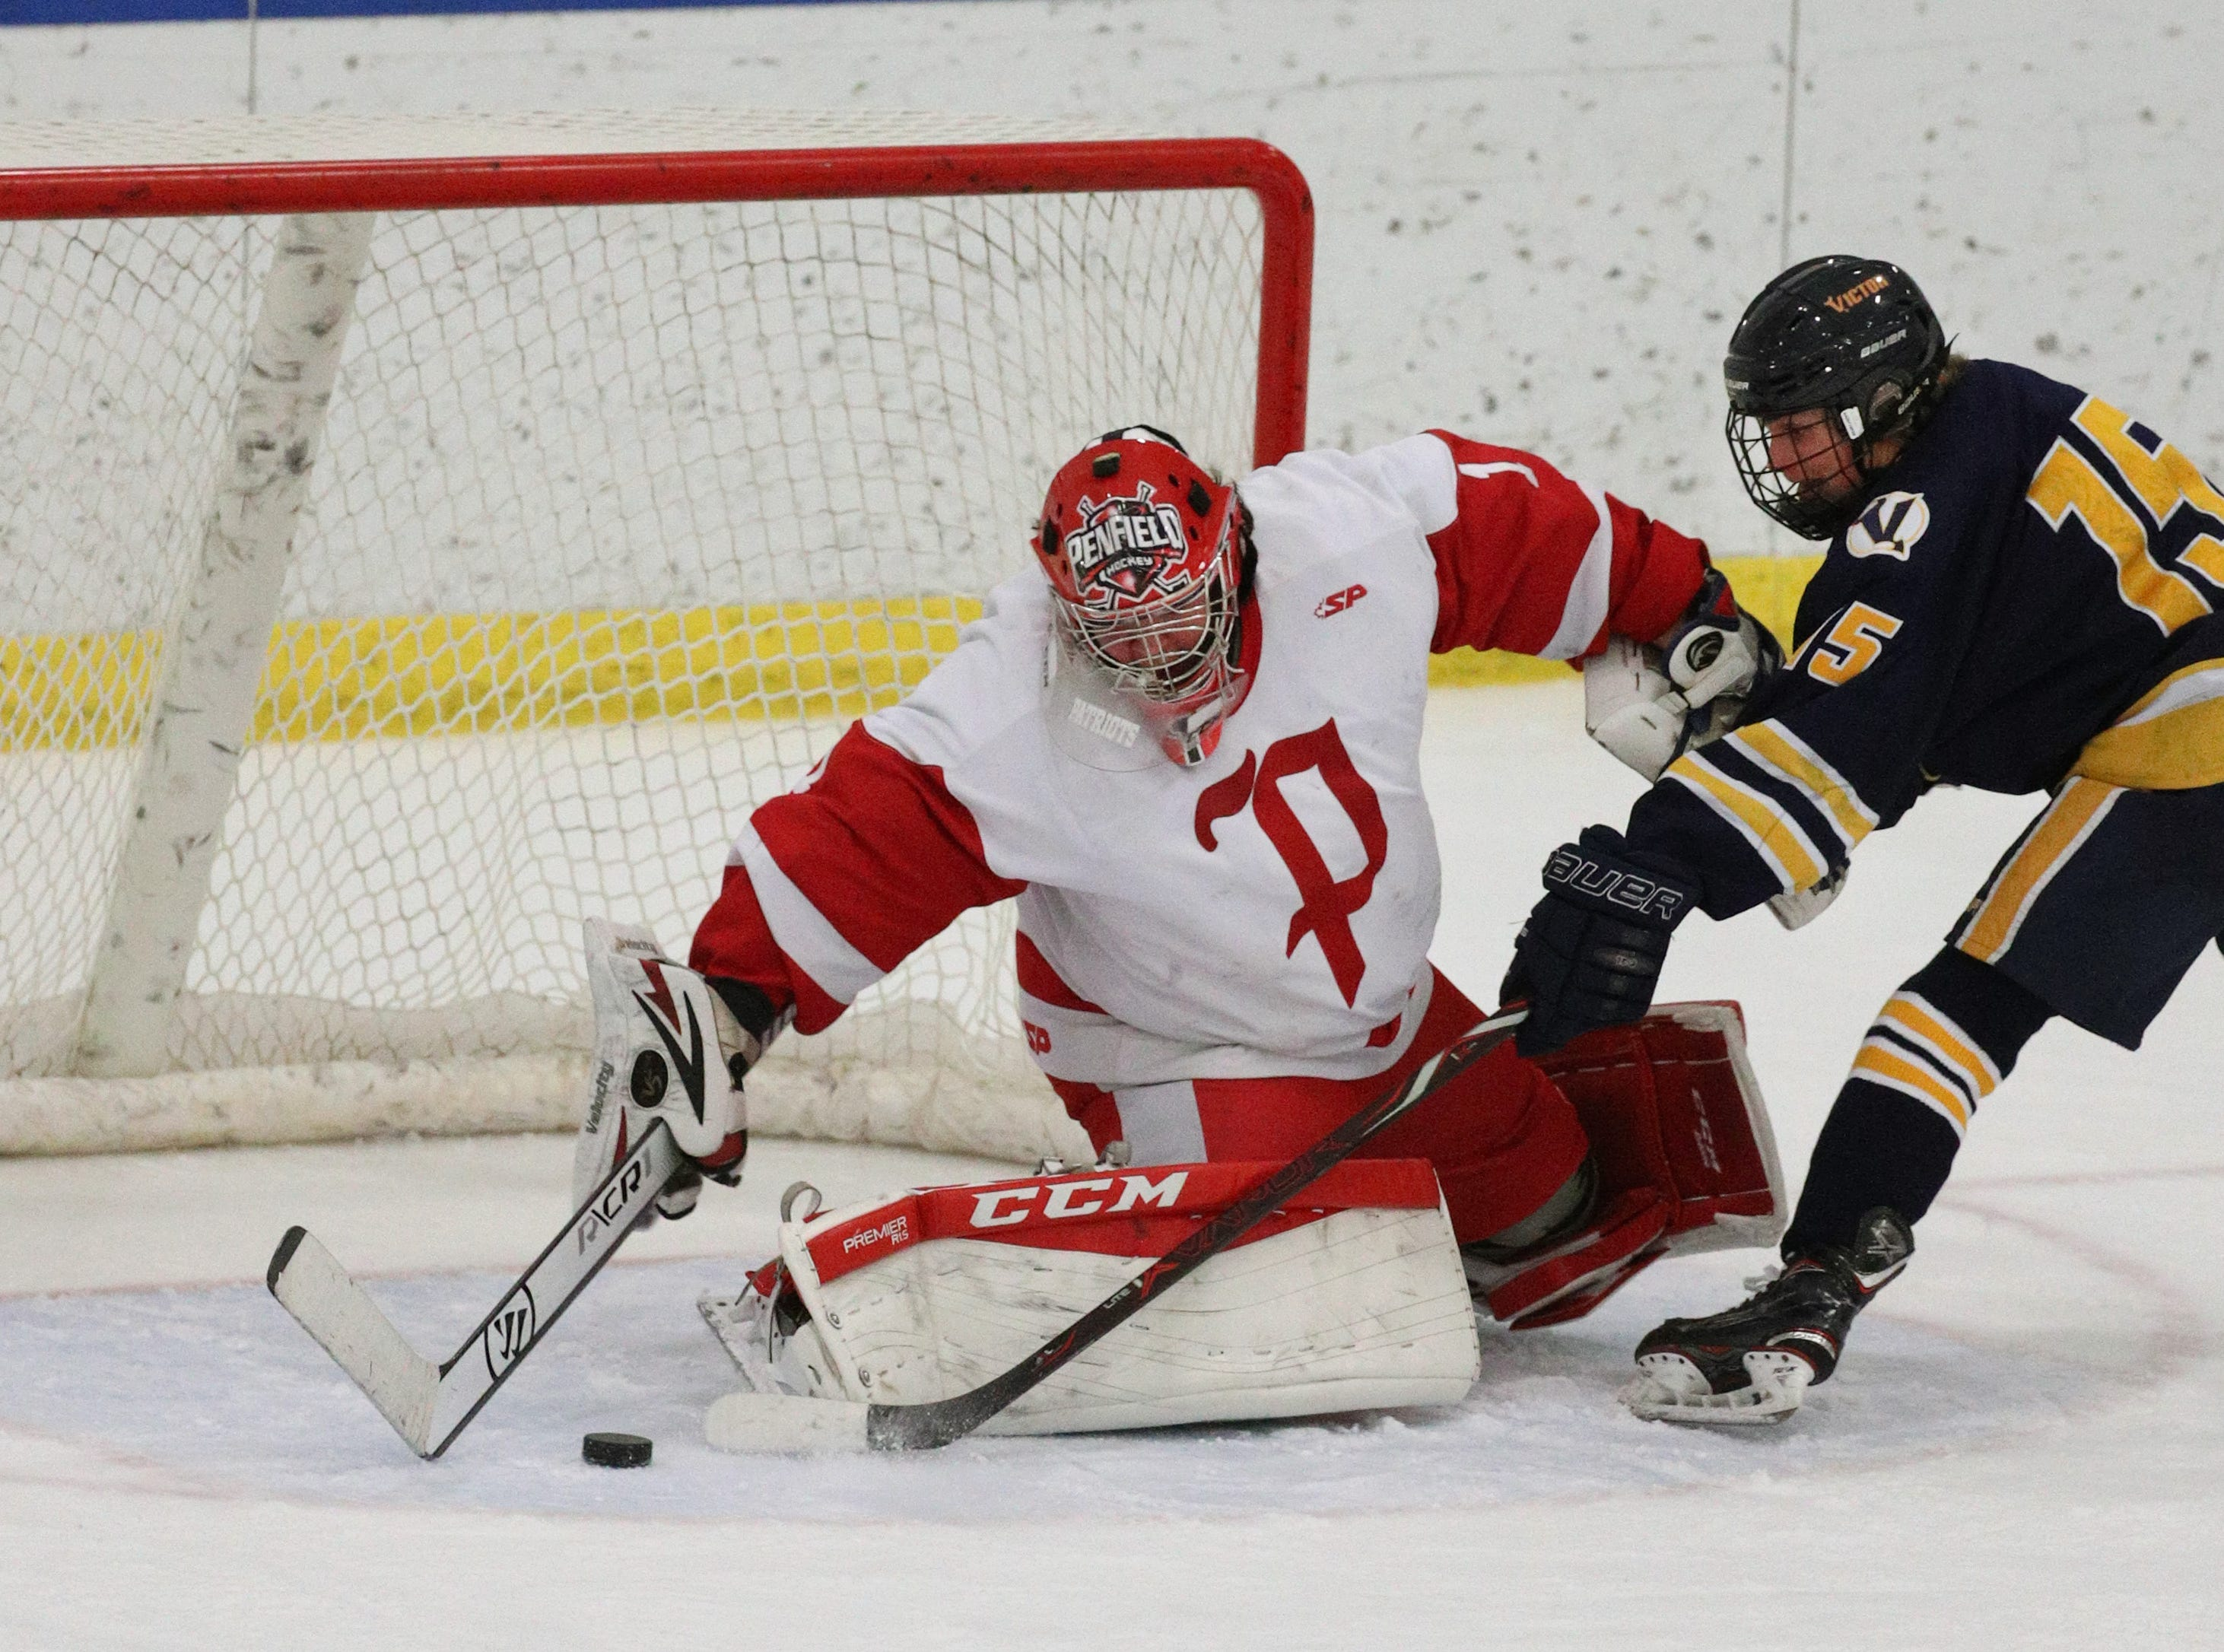 Penfield goalie Nick Andrade makes a stop against Victor's Lukas Miller.